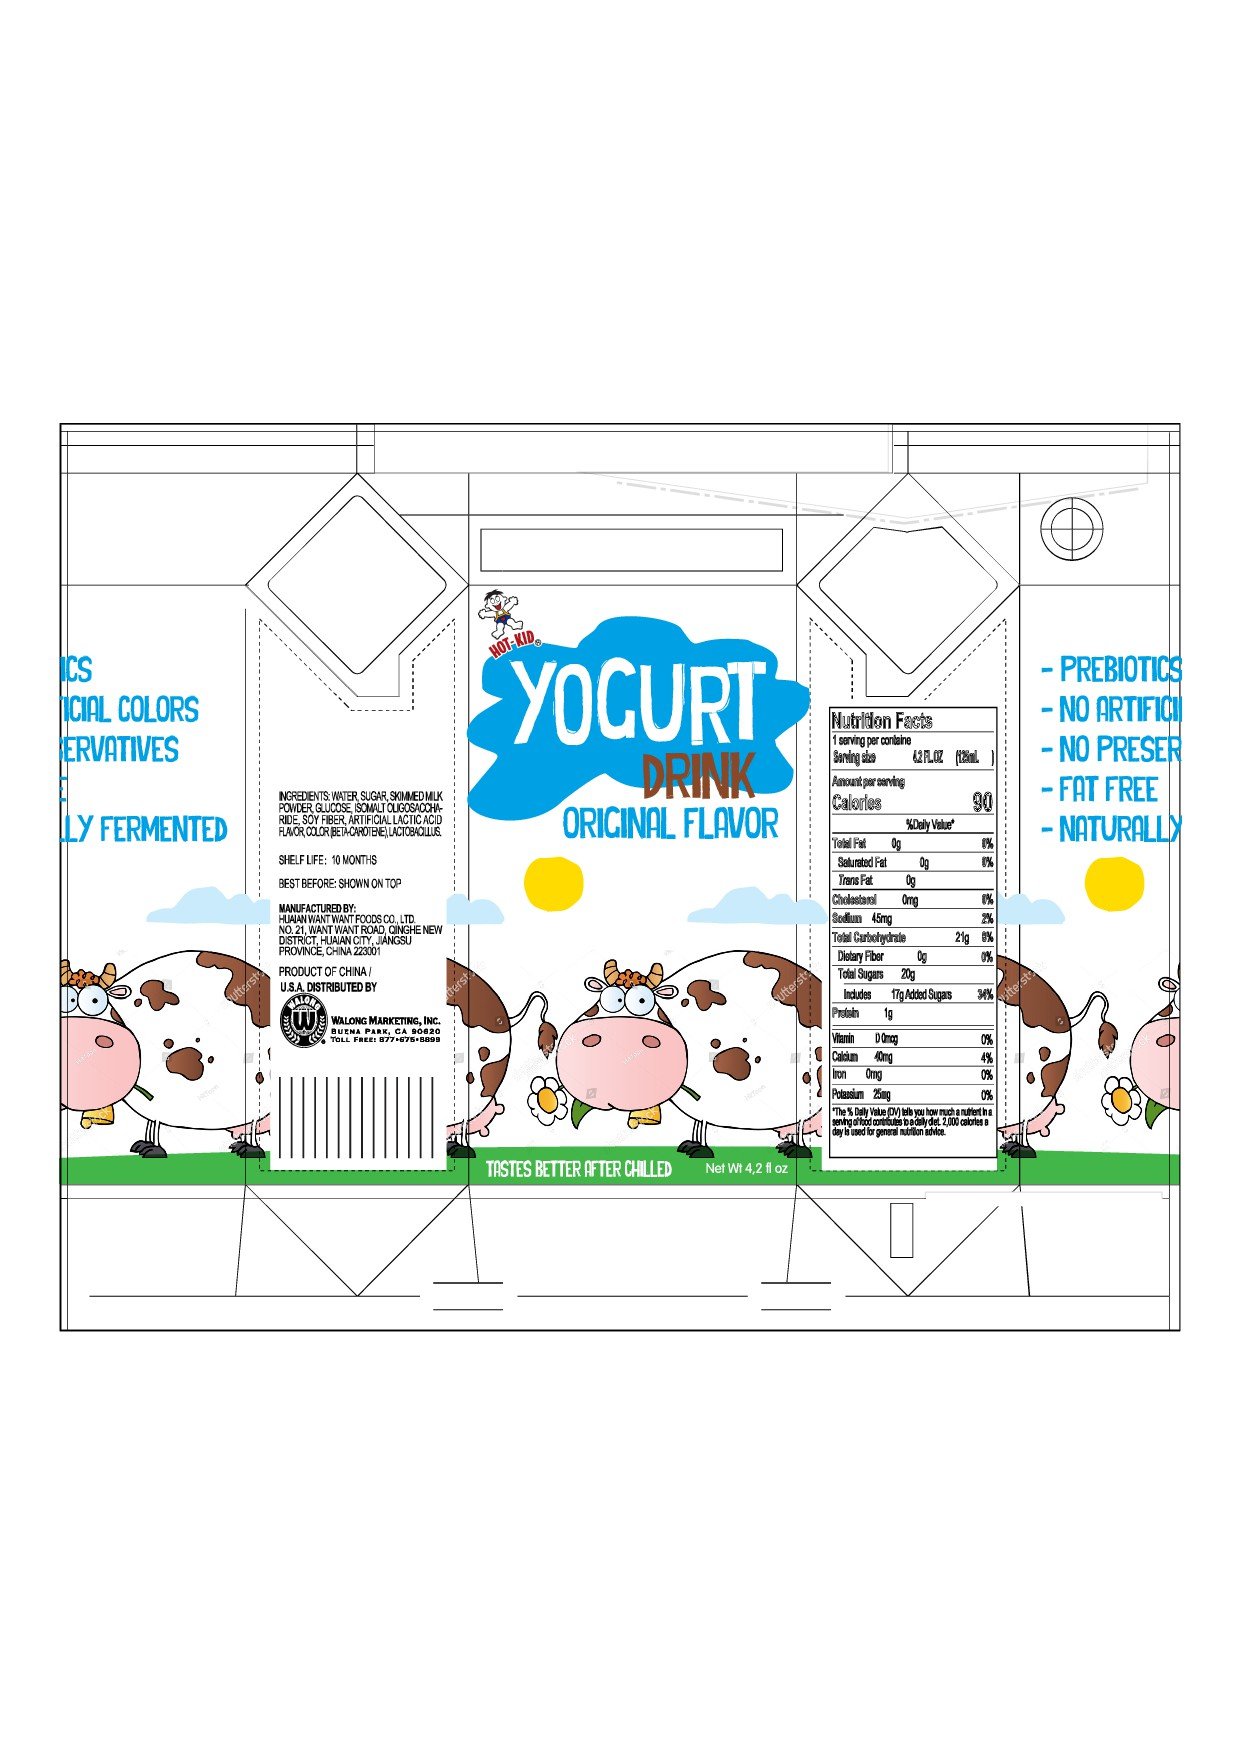 Create Packaging Design for a Boxed Yogurt Drink